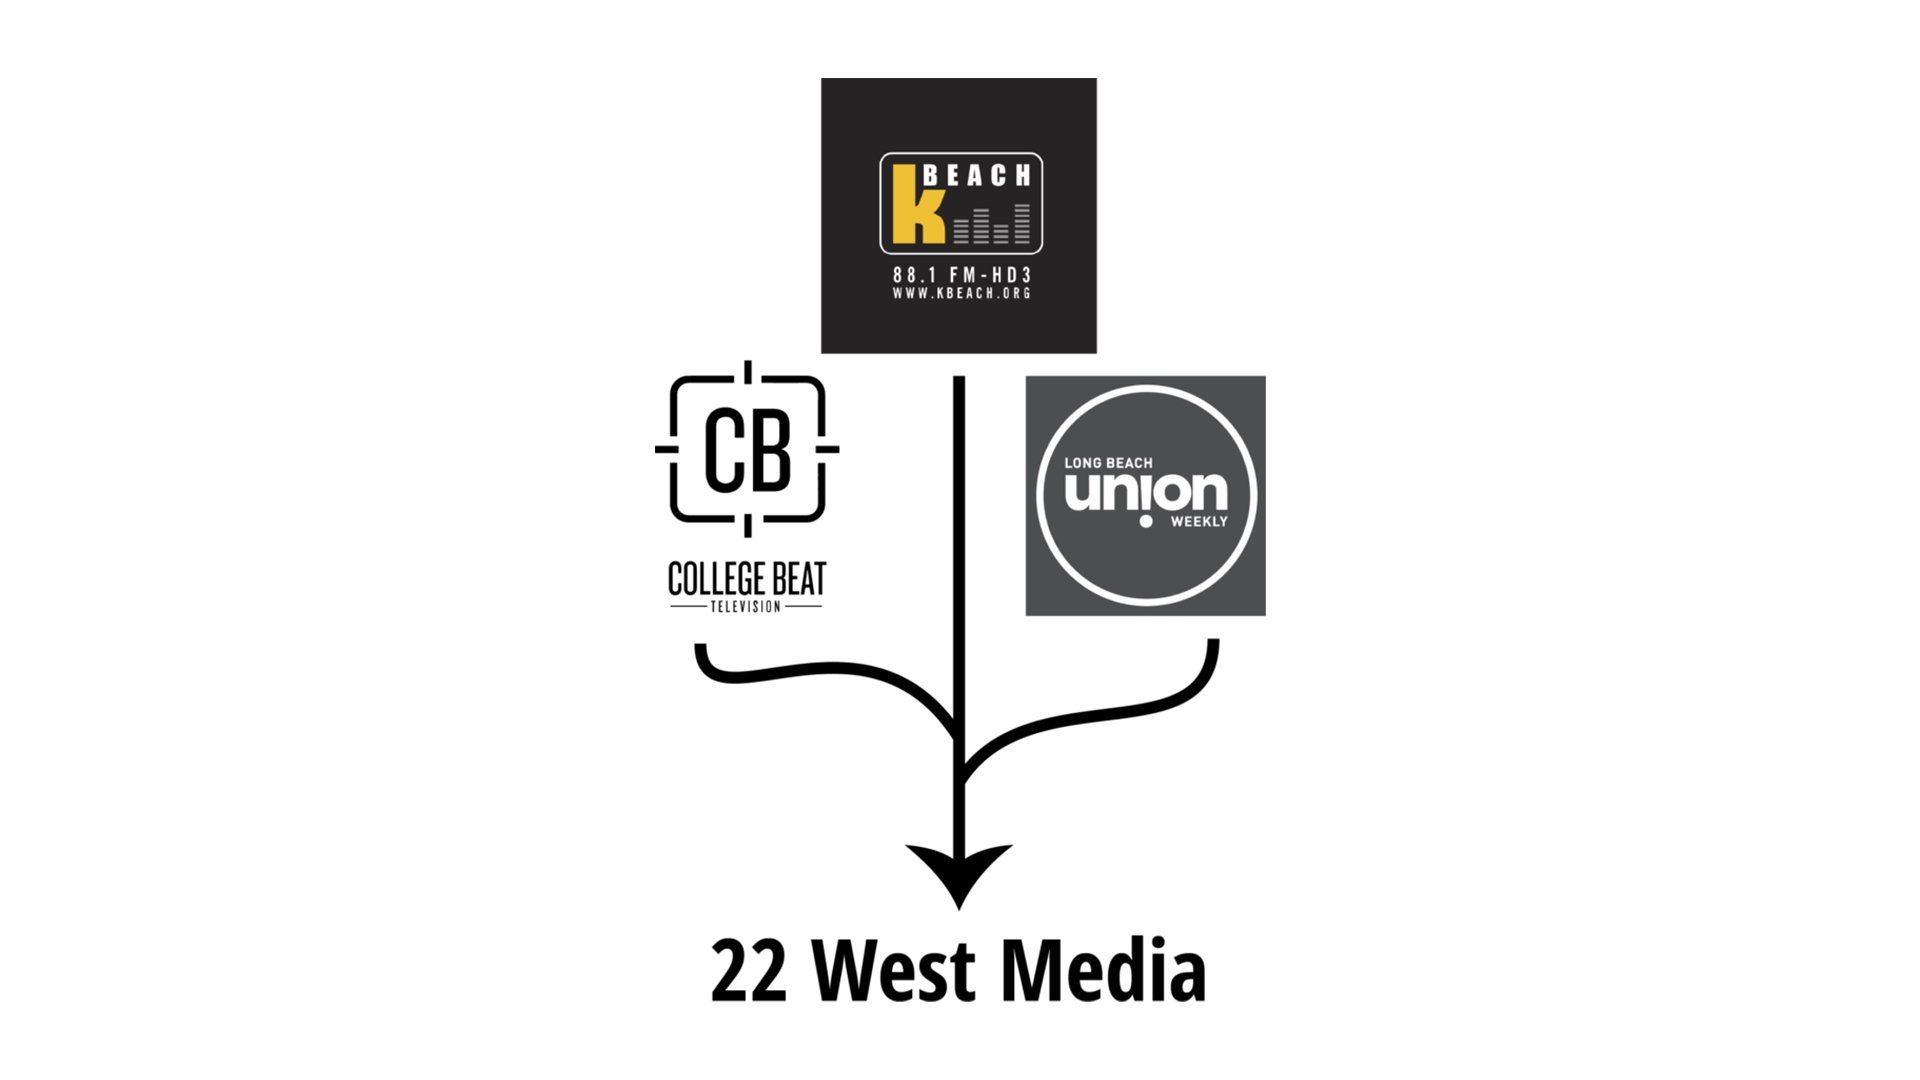 .@Kbeach_Radio, @UnionWeekly and @CollegeBeatTV may become one. #News #CSULB #49erNow https://t.co/585MGCYOgV https://t.co/unkefQ61ou